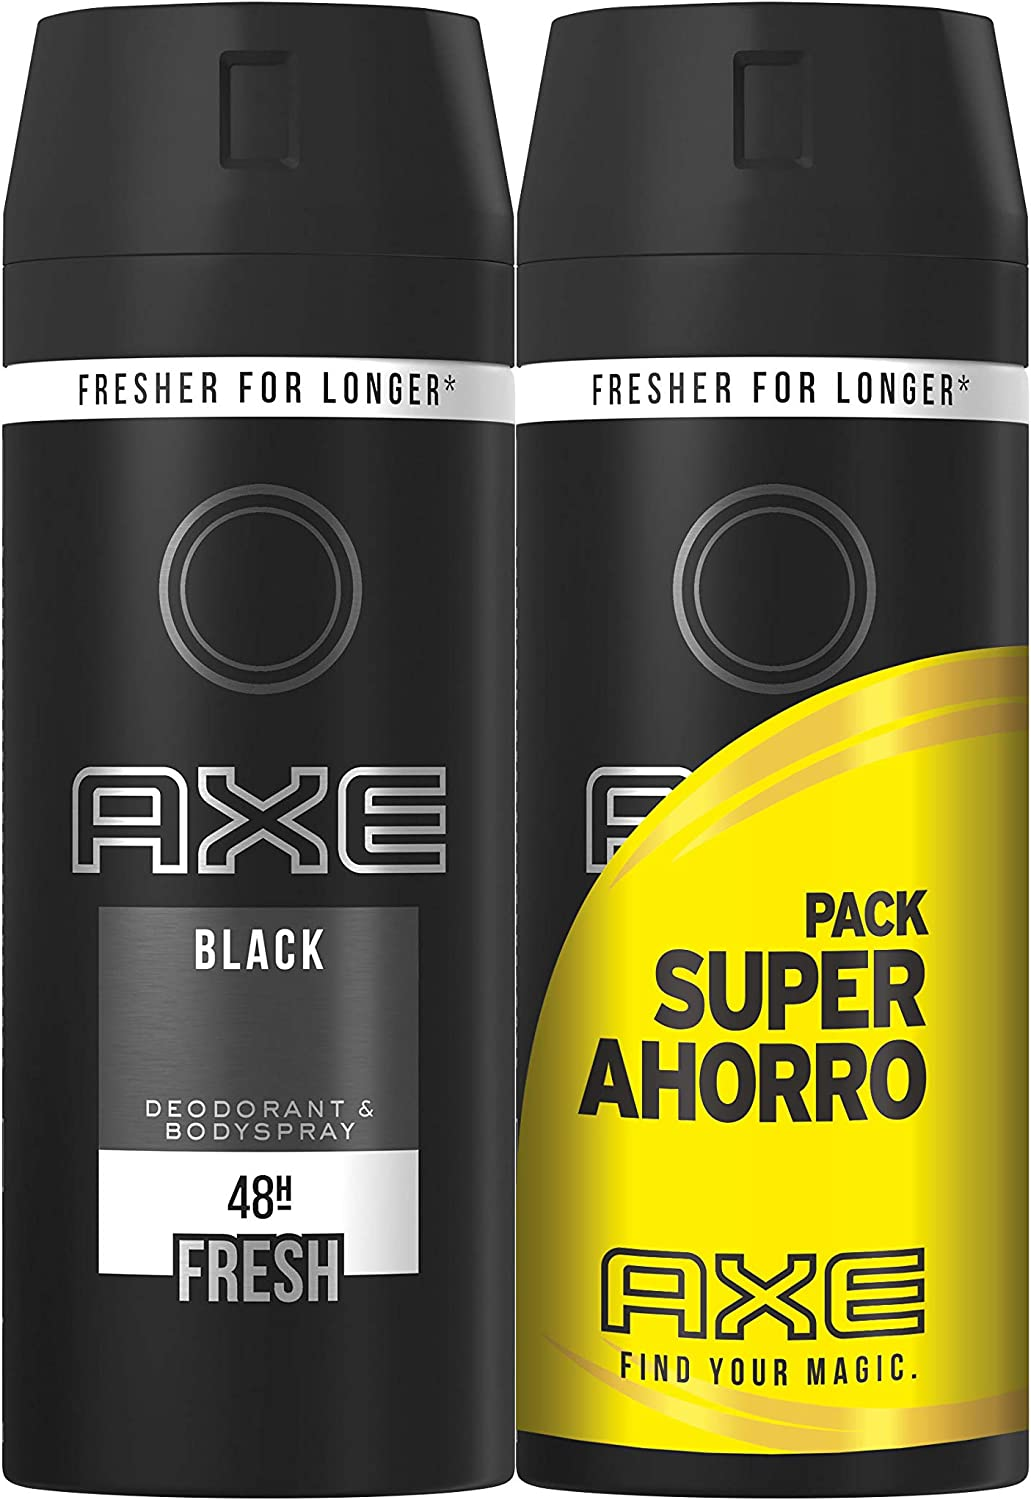 Axe - Pack Duplo Ahorro Desodorante Black - 2 x 150 ml: Amazon.es ...